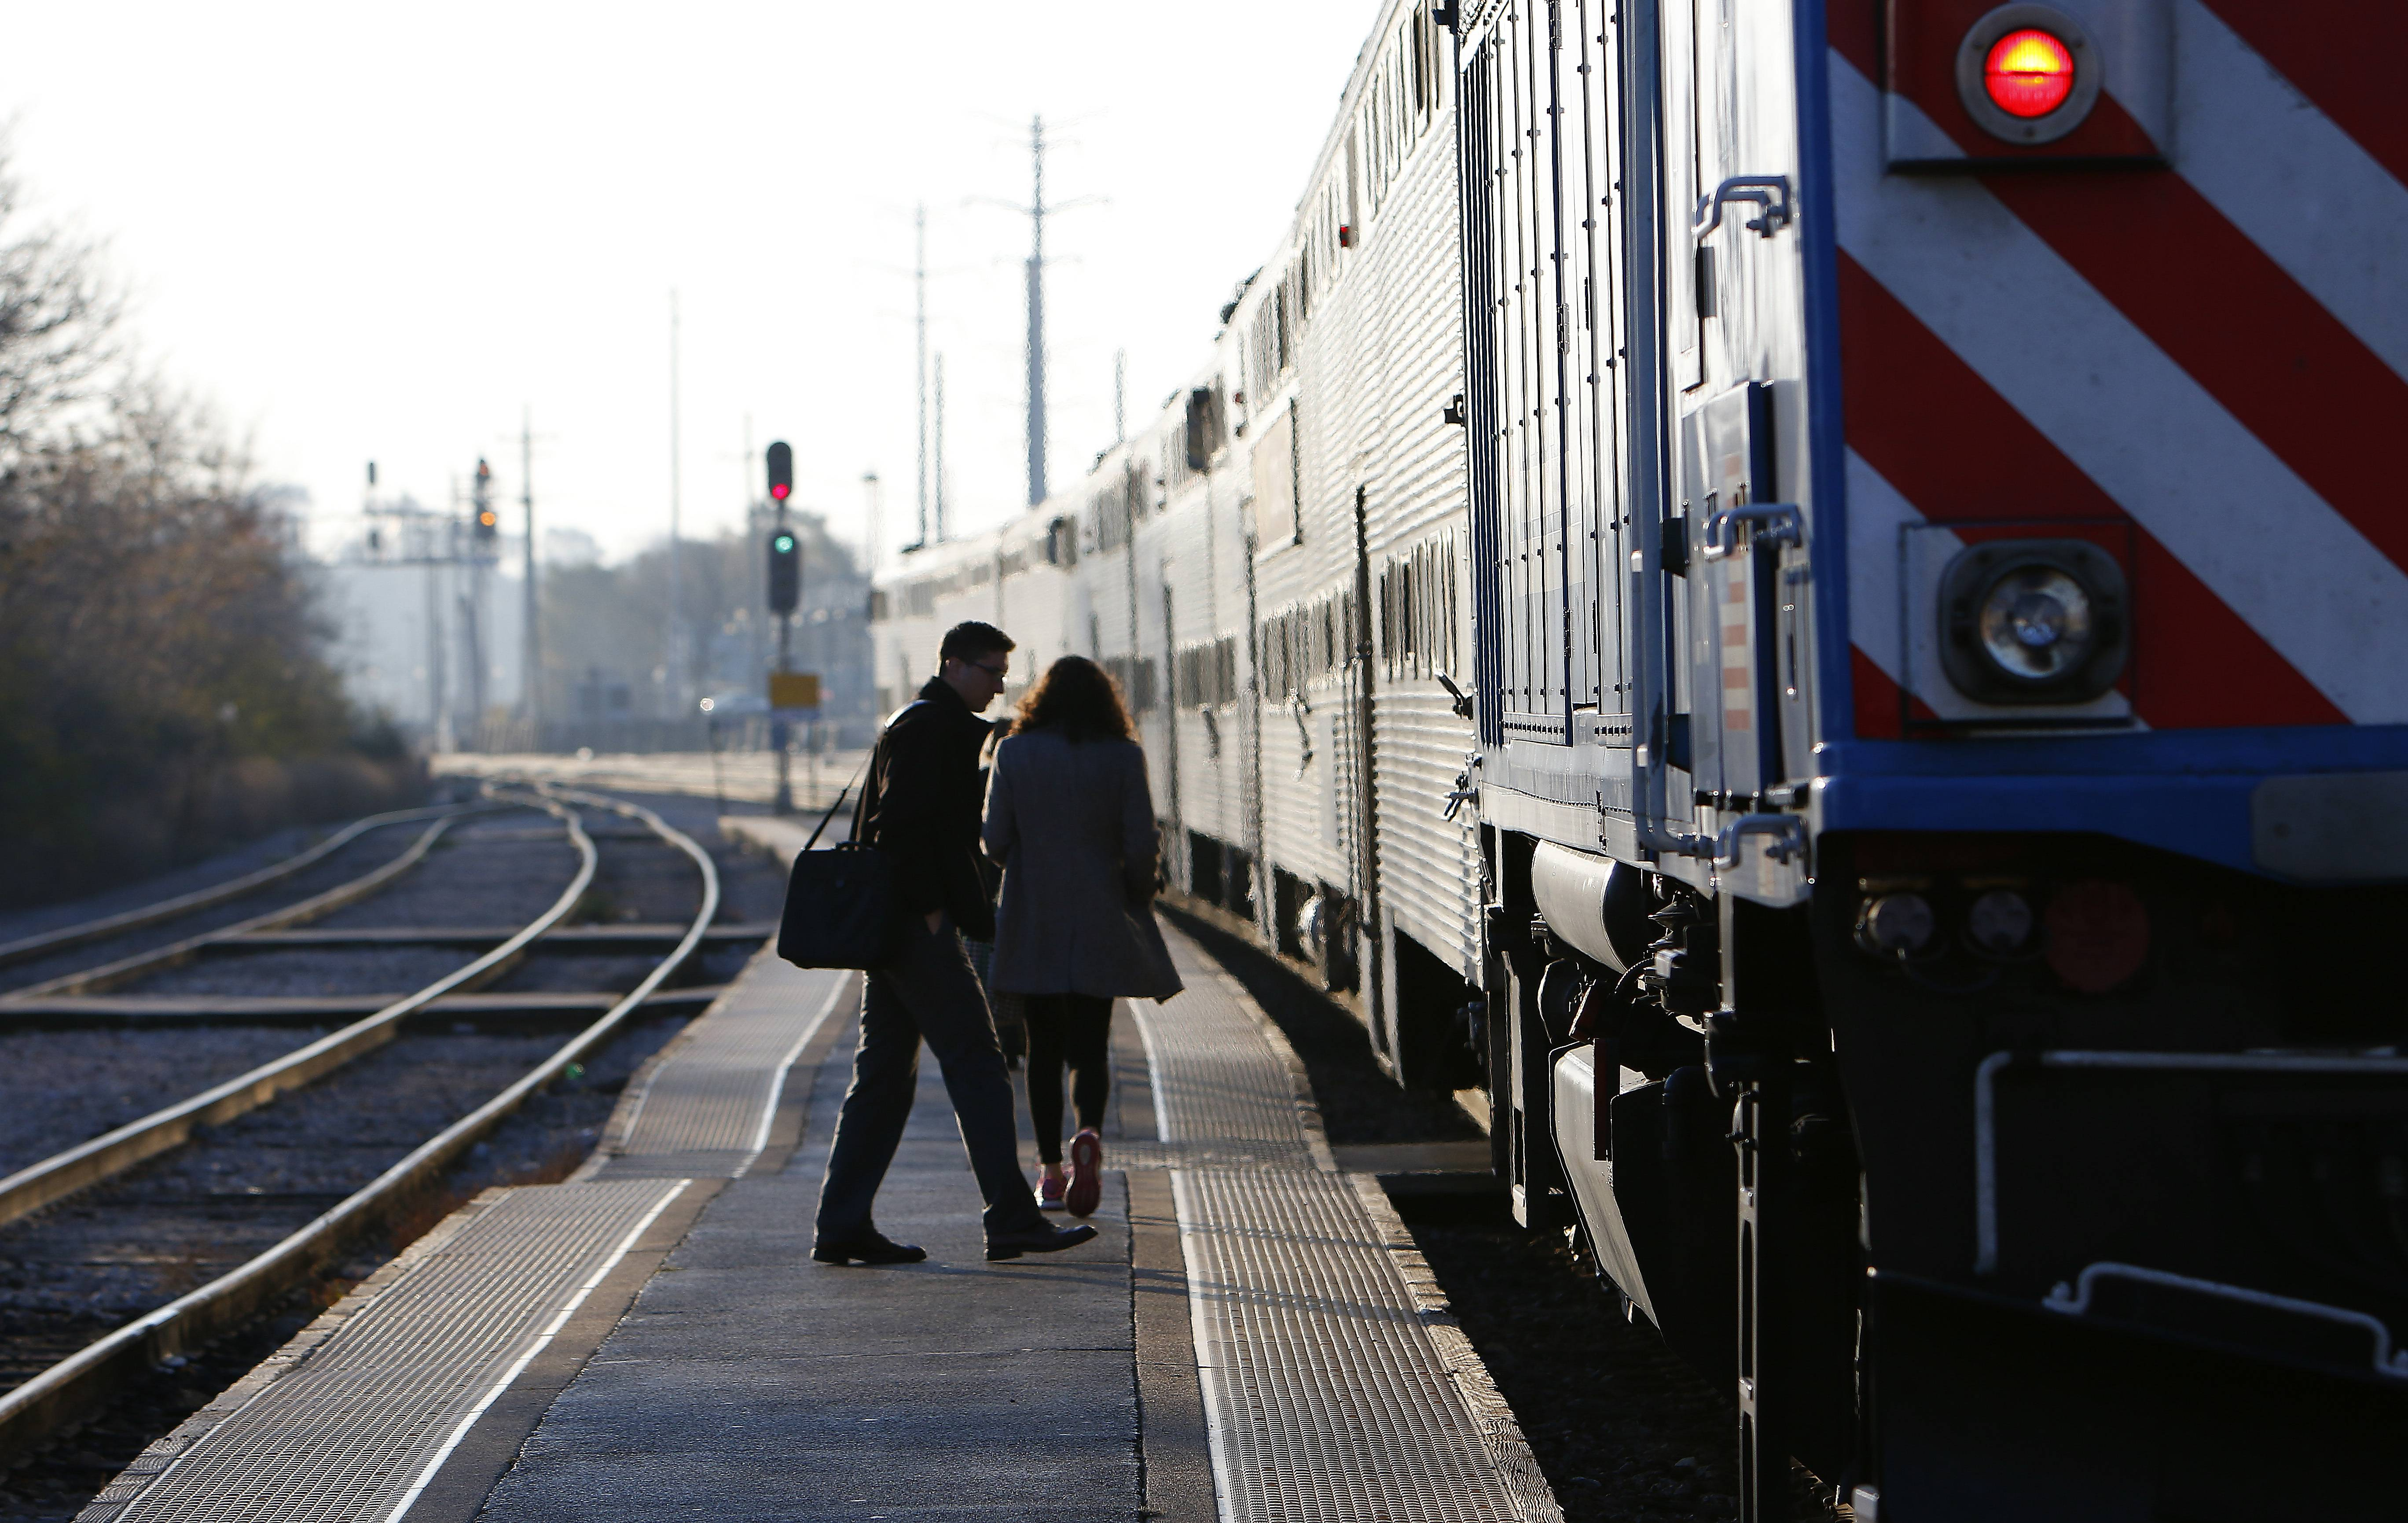 Editorial: Despite 2 percent fare hike, Metra shows signs of 'better times' ahead